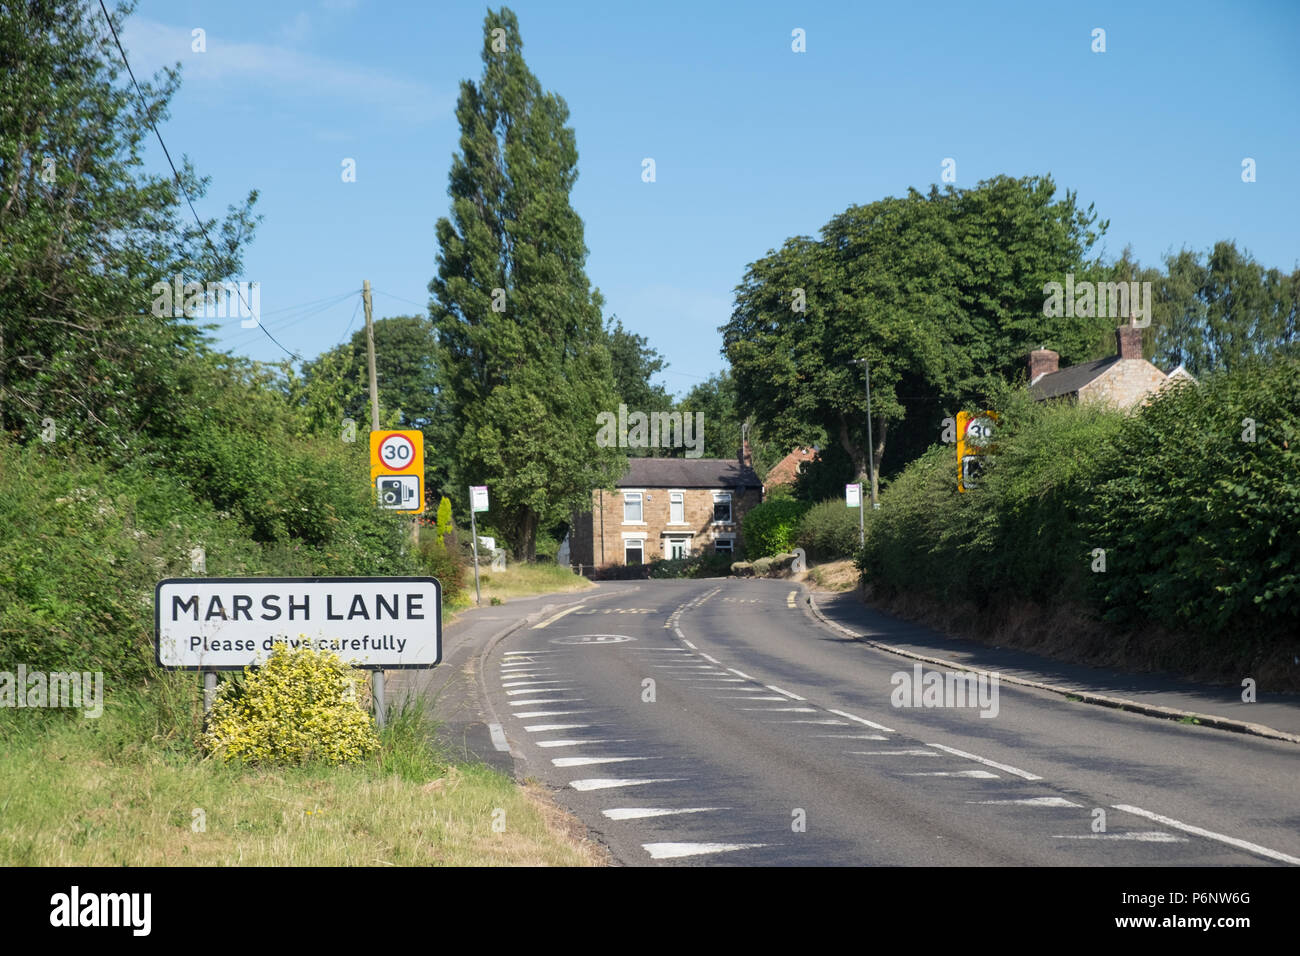 Marsh Lane, Derbyshire. July 2nd 2018. Ineos have applied to drill a test well to explore shale gas reserves with a view to fracking extraction. - Stock Image